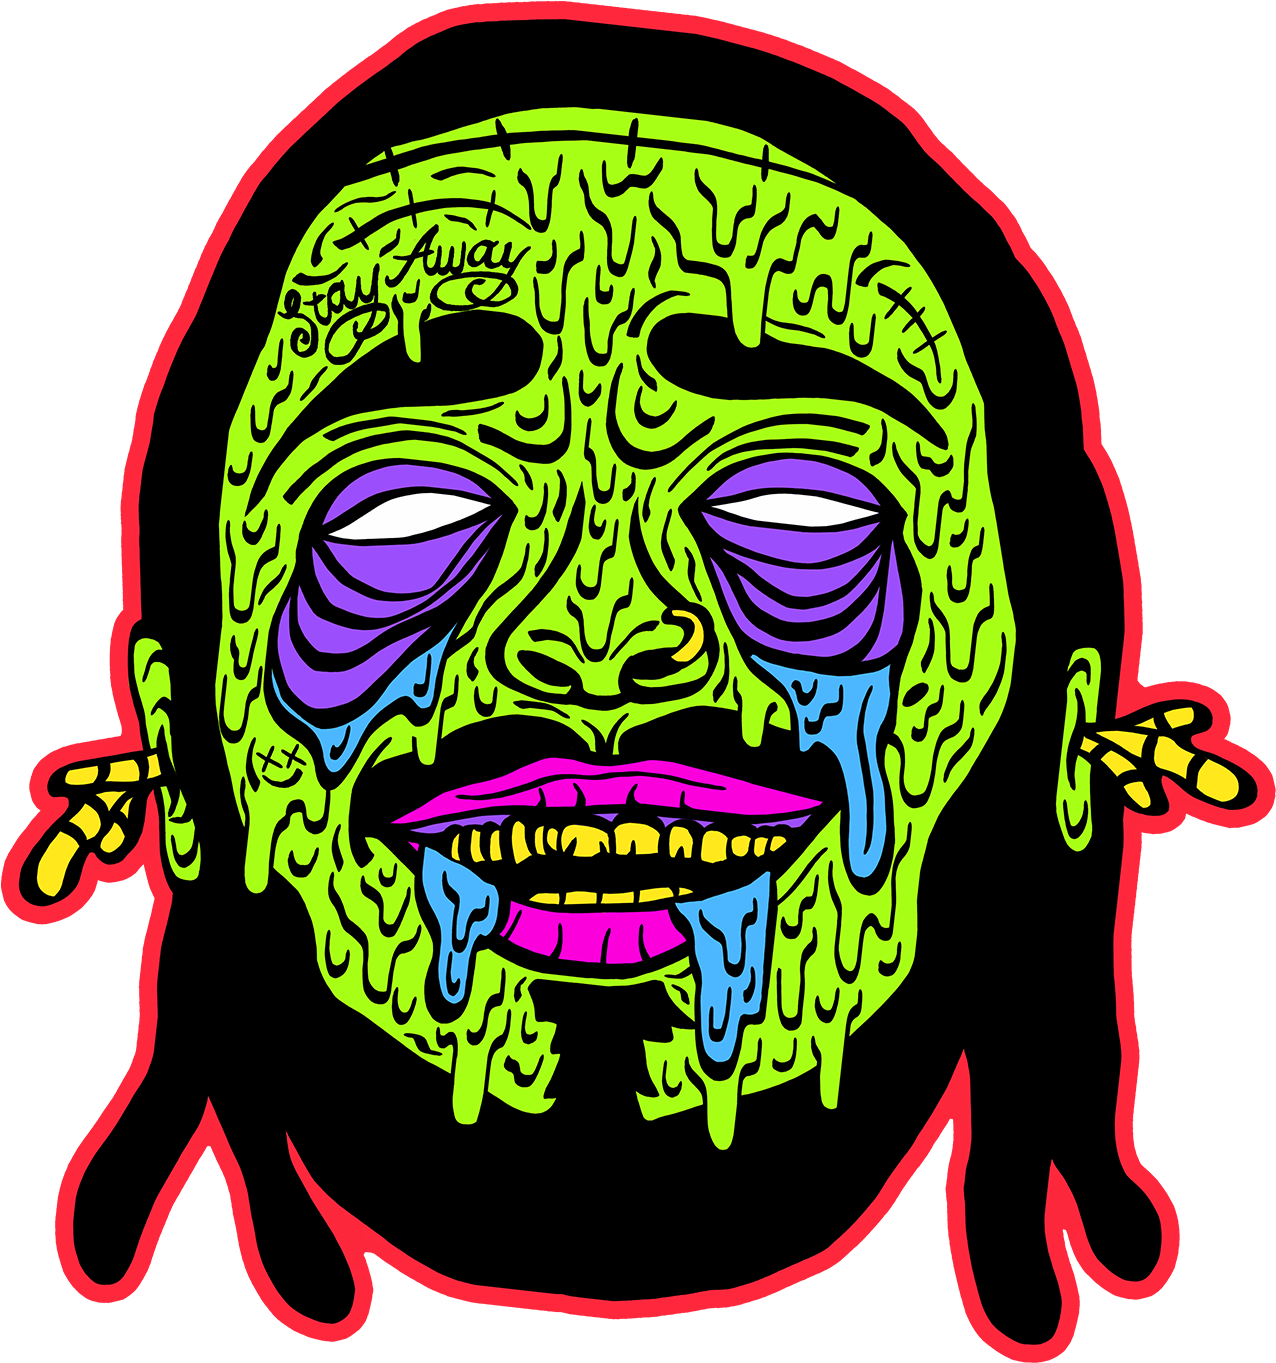 Download Zombie Post Malone T Shirt Full Size Png Image Pngkit